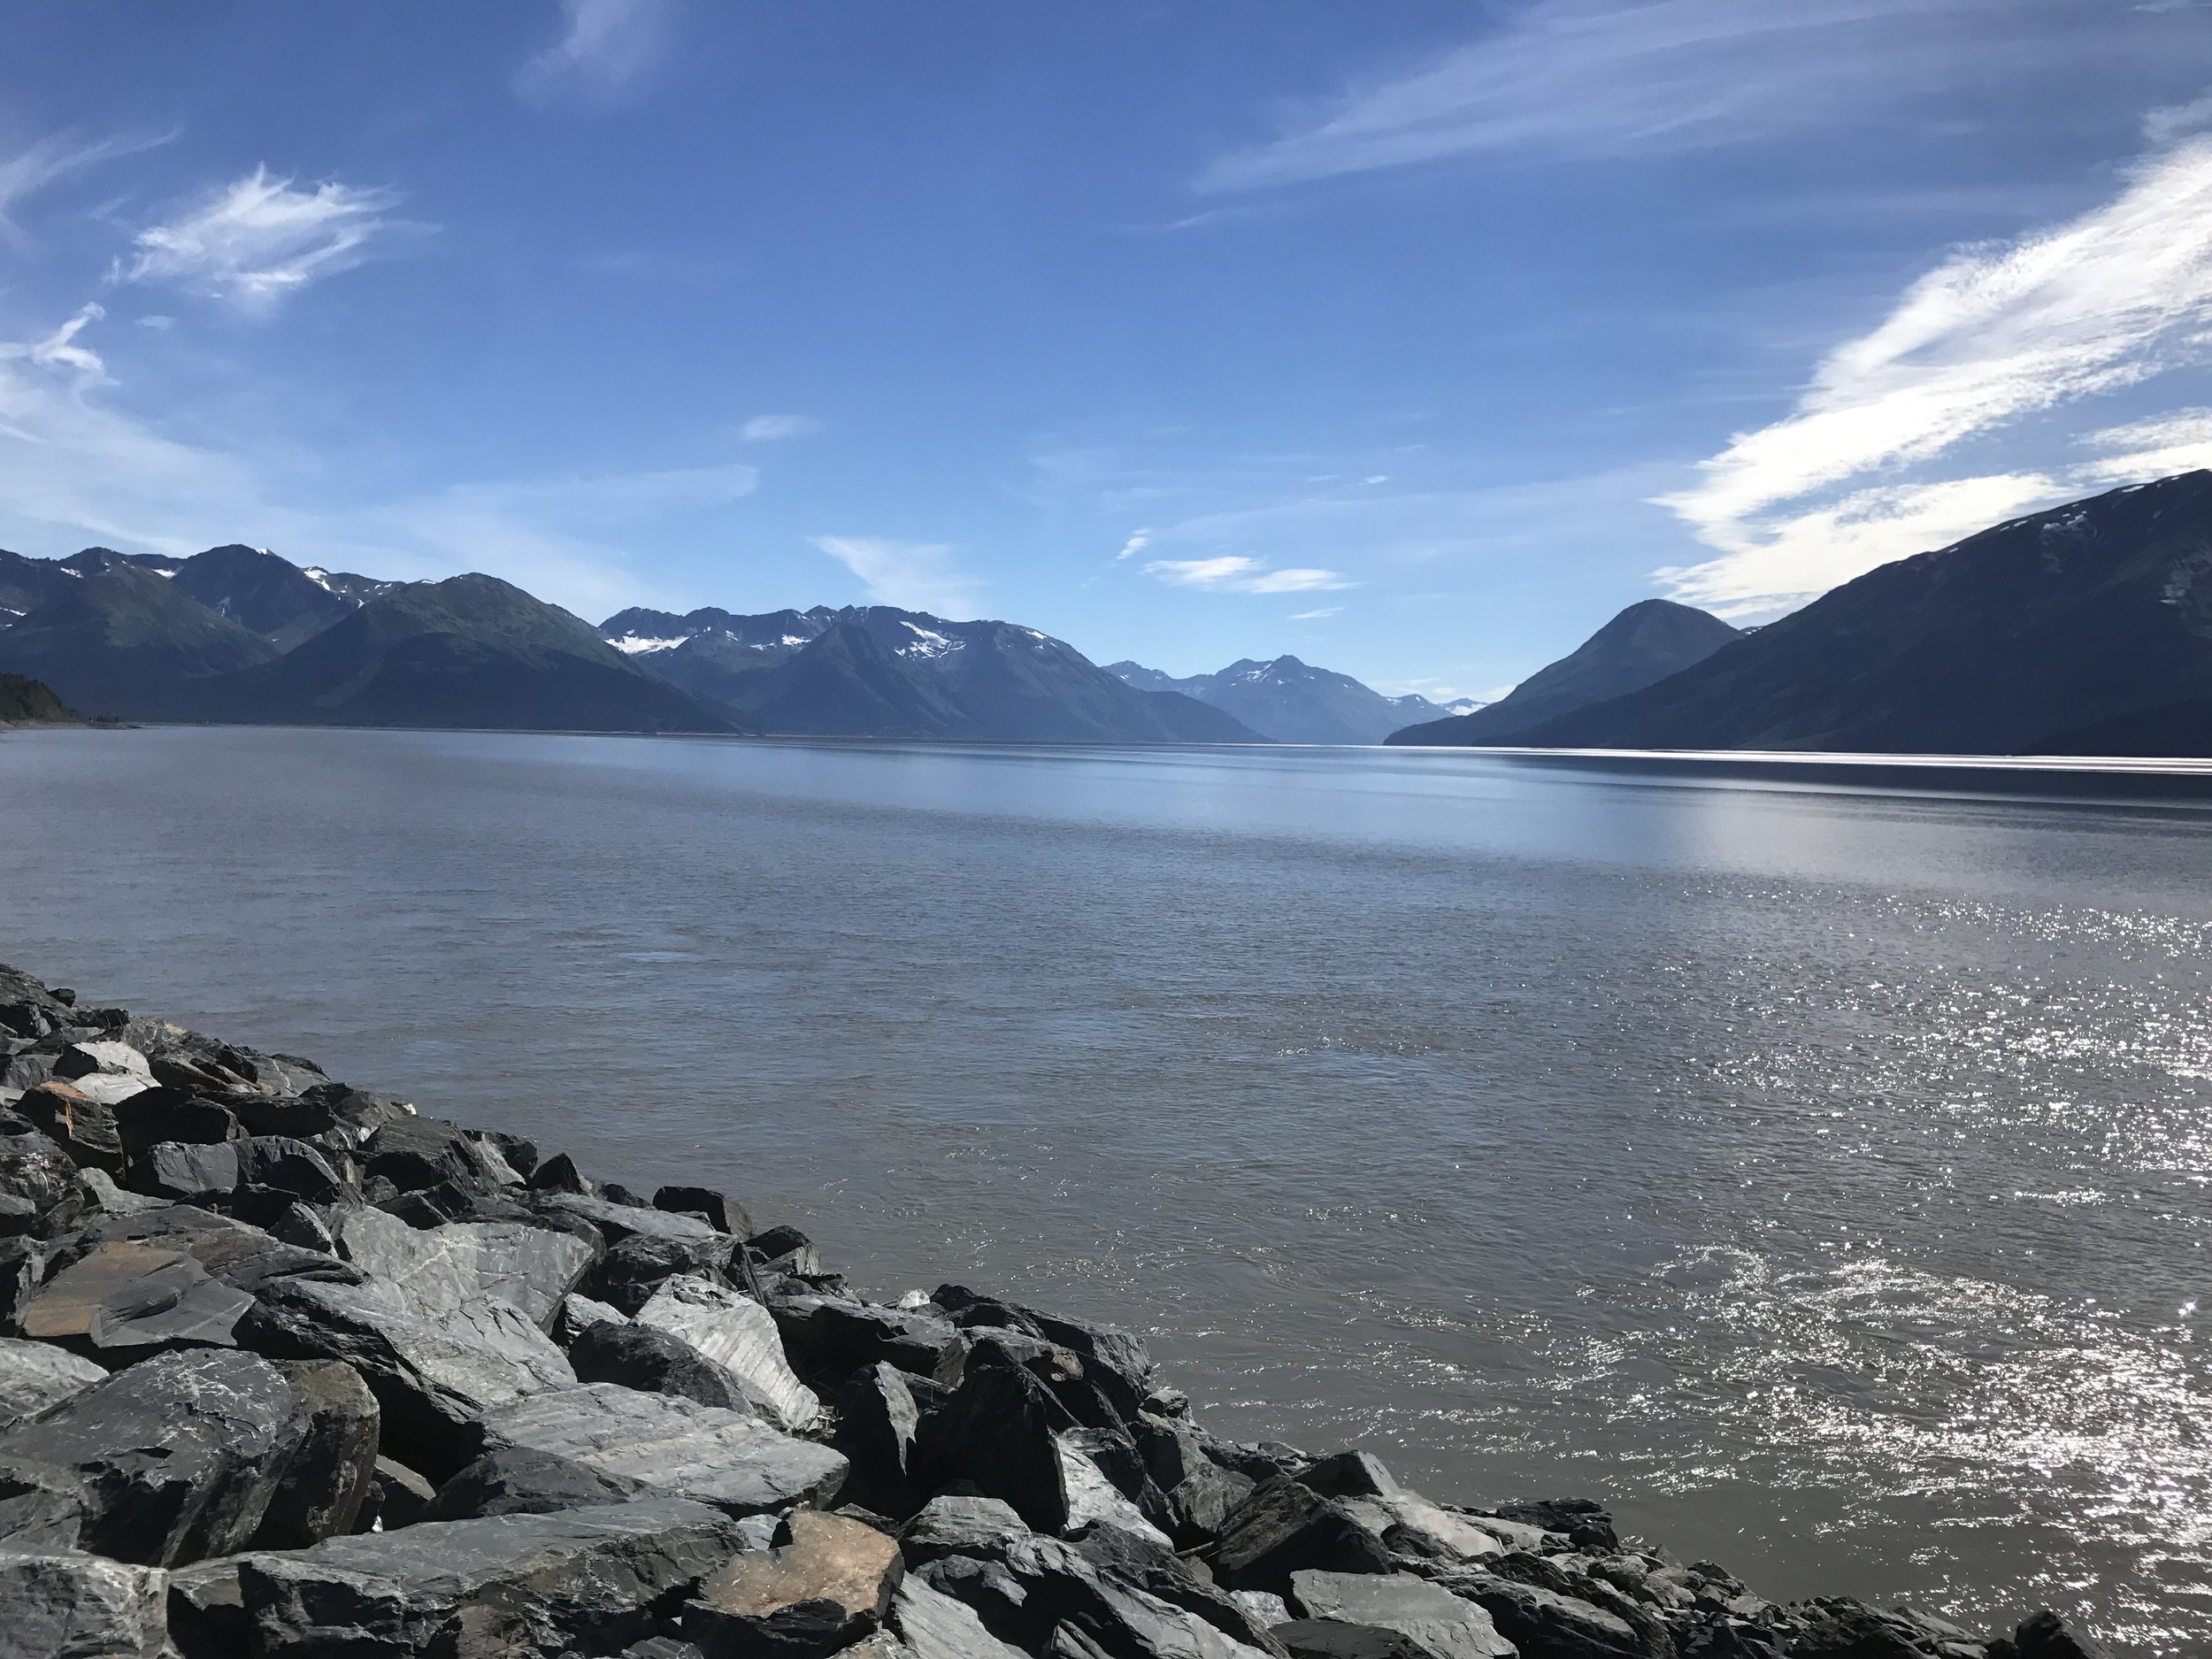 Along the road to Seward